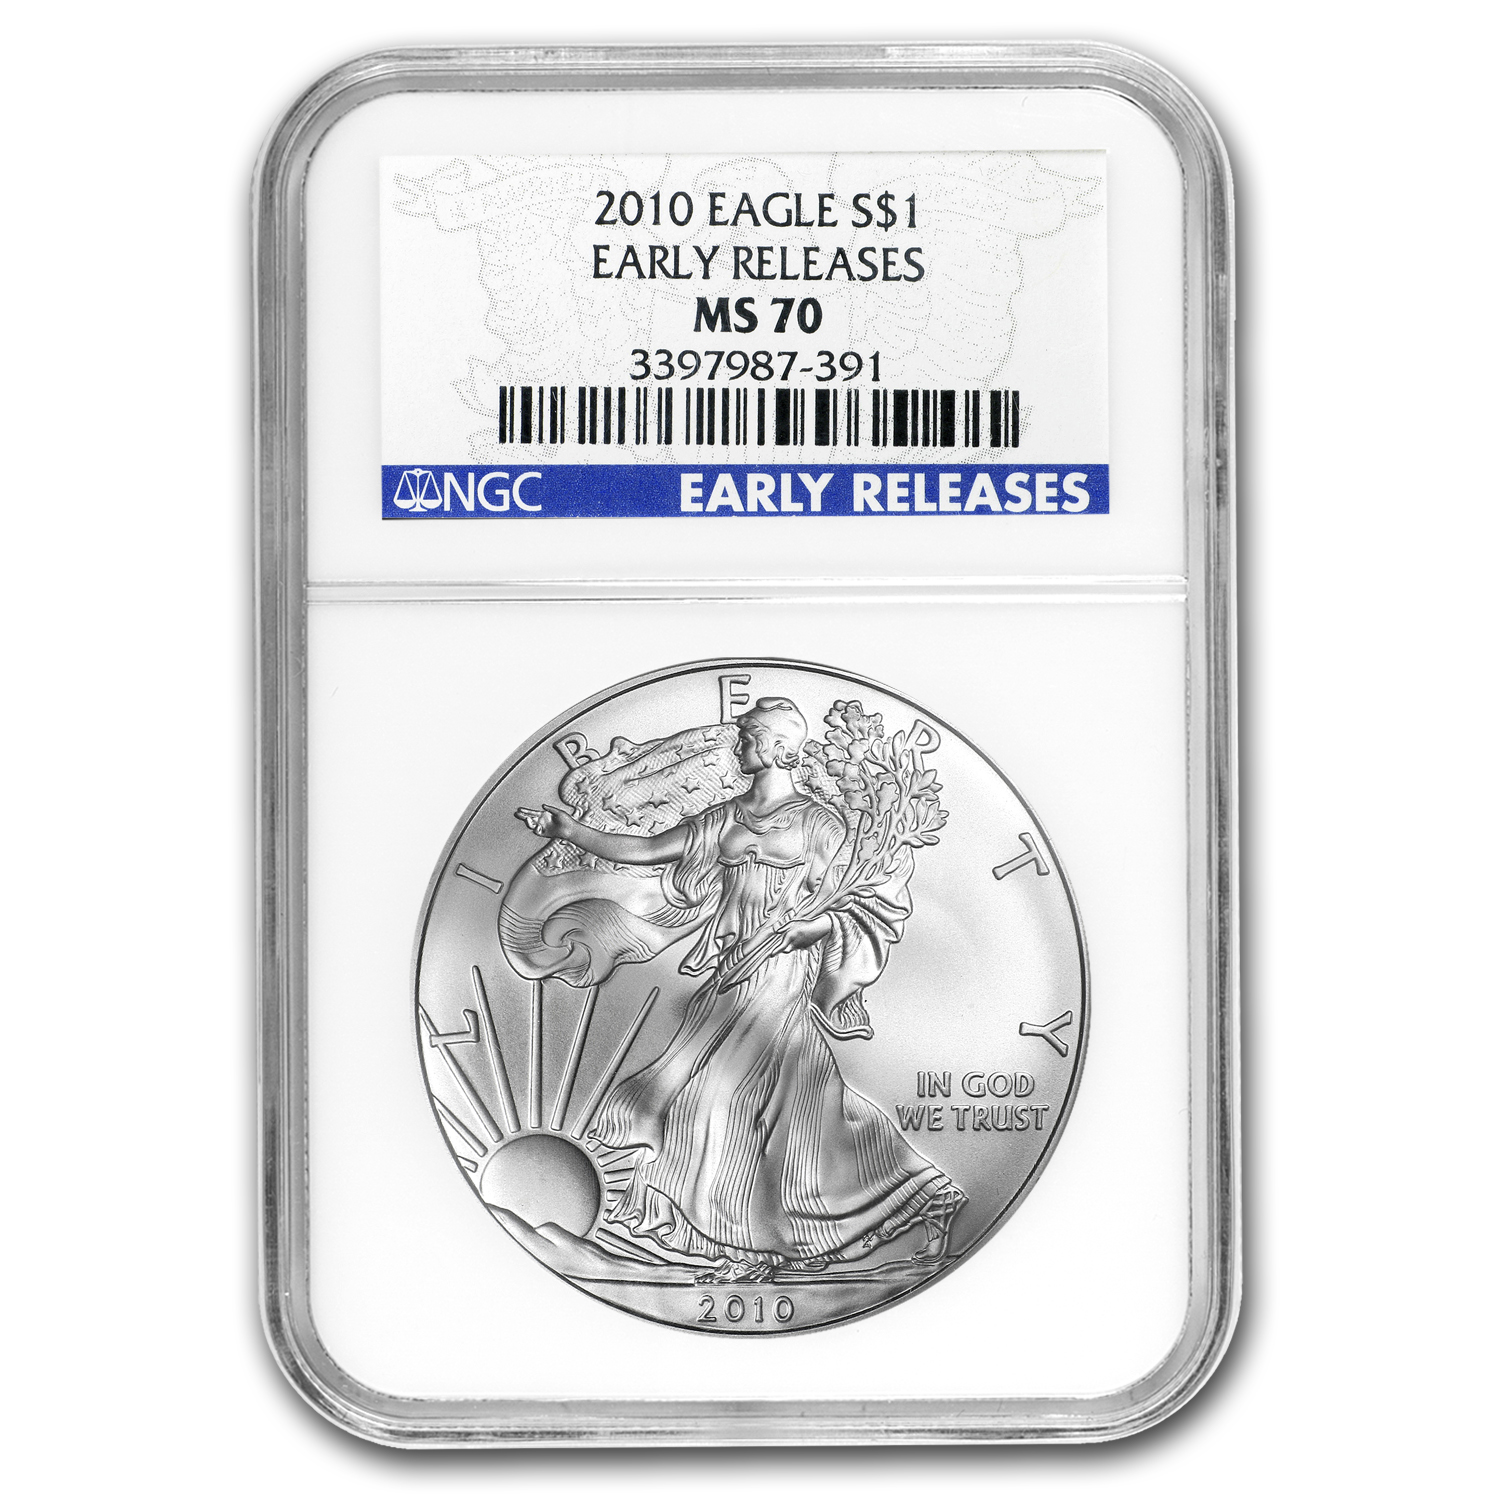 2010 Silver American Eagle - MS-70 NGC - Blue Label/Early Release